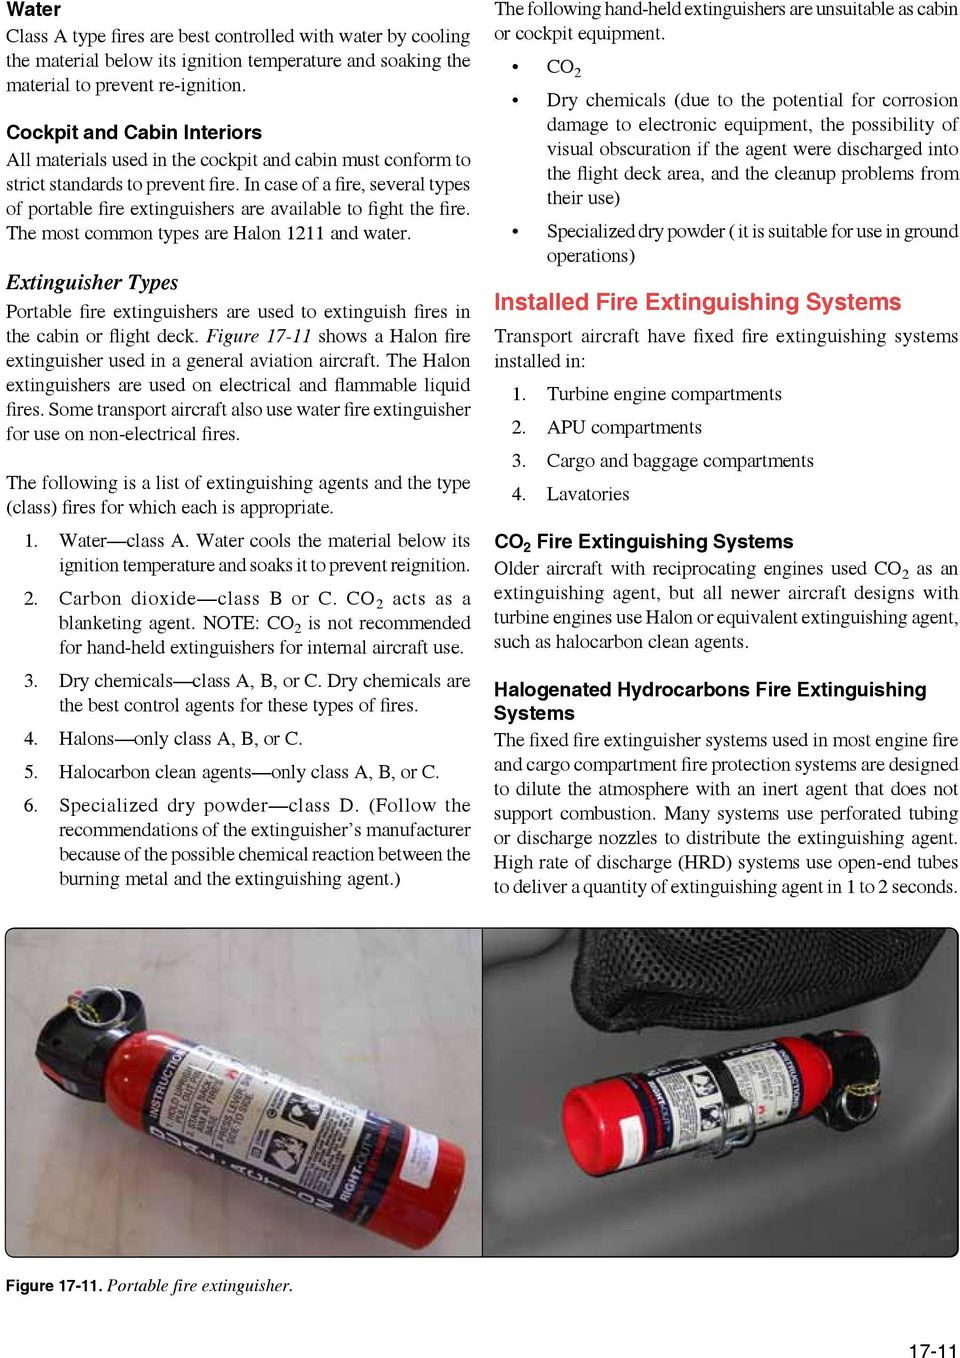 In case of a fire, several types of portable fire extinguishers are available to fight the fire. The most common types are Halon 1211 and water.